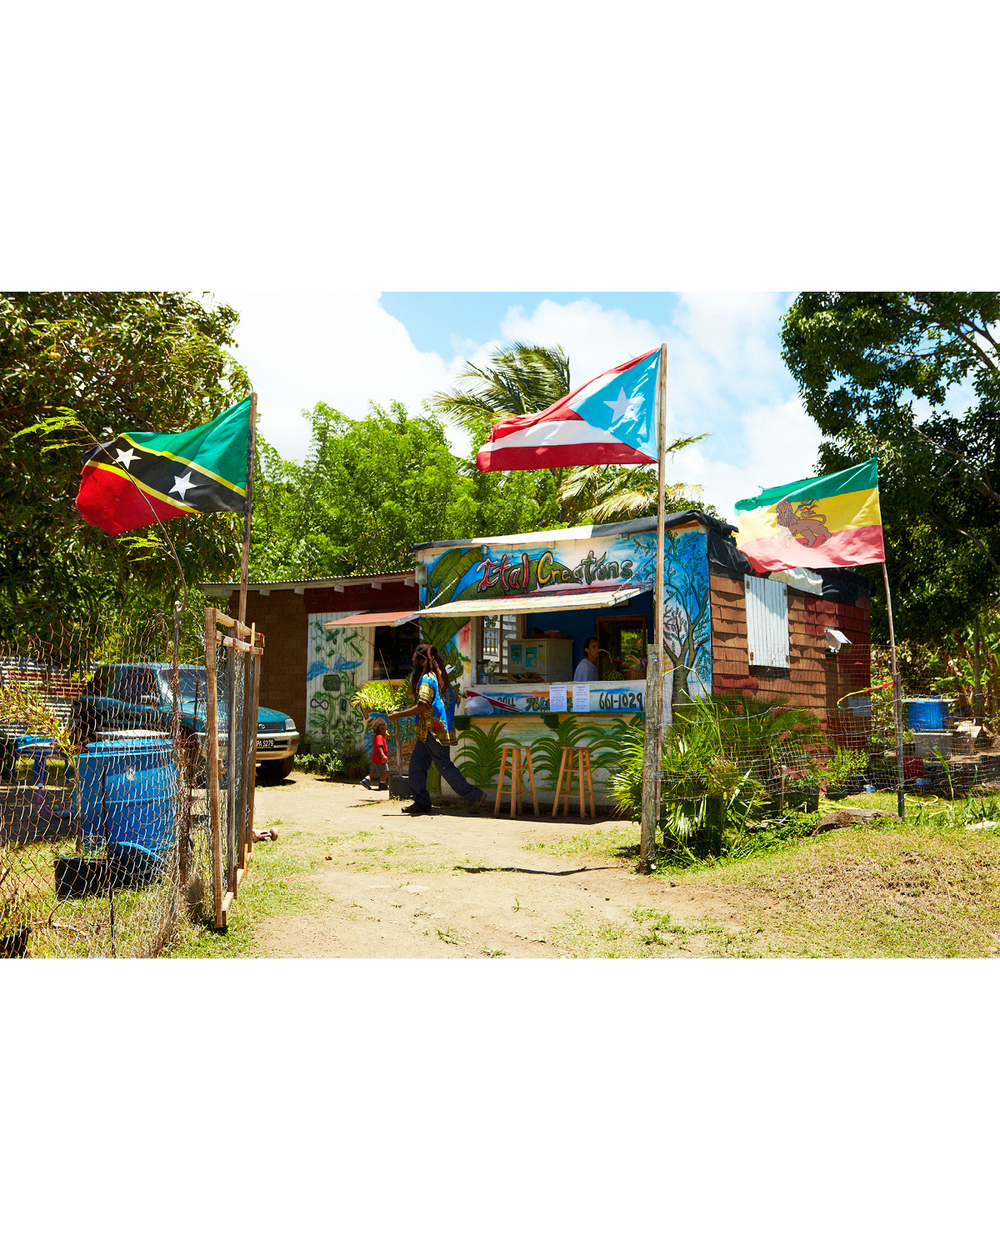 ITAL CREATIONS NEAR BASSETERRE